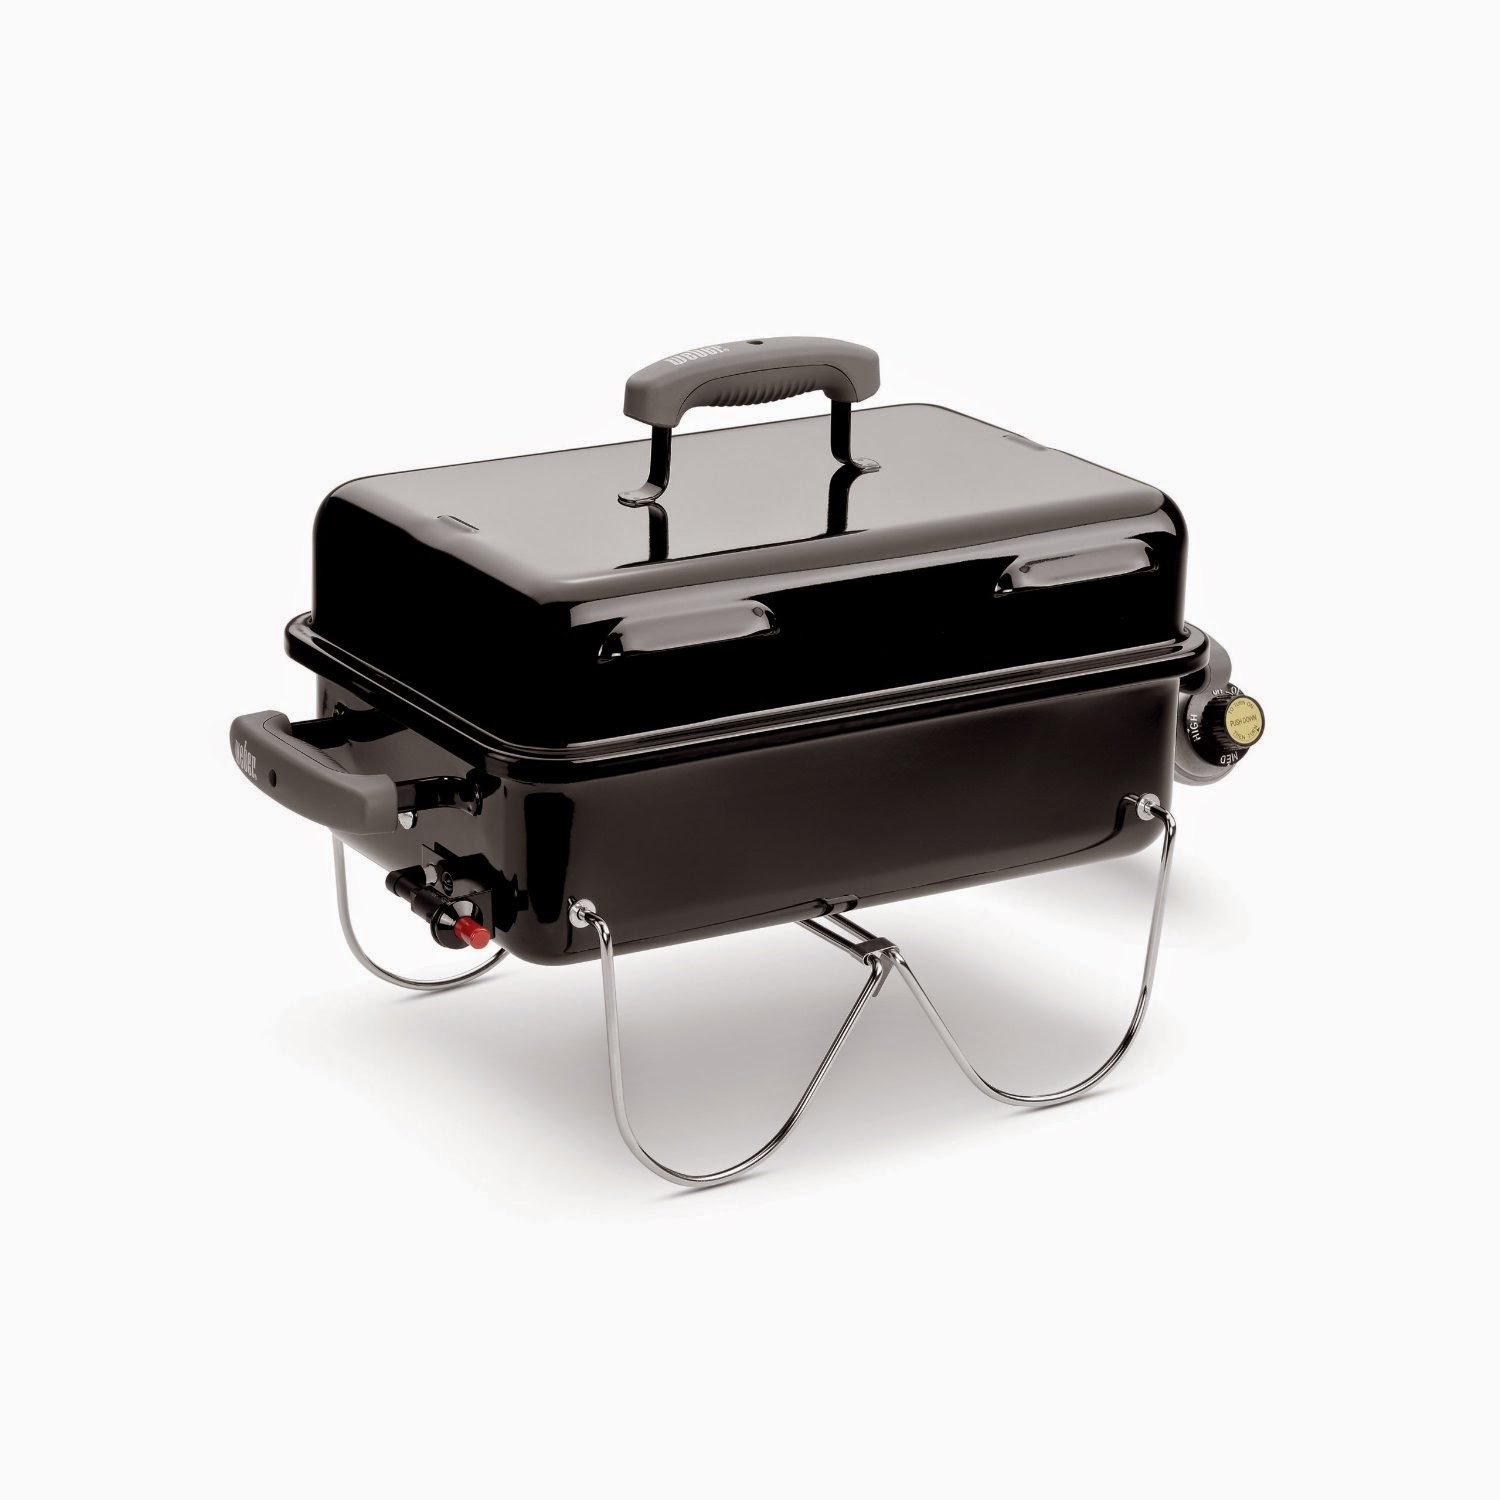 weber gas grill replacement parts weber gas weber 1141001 go anywhere gas grill. Black Bedroom Furniture Sets. Home Design Ideas